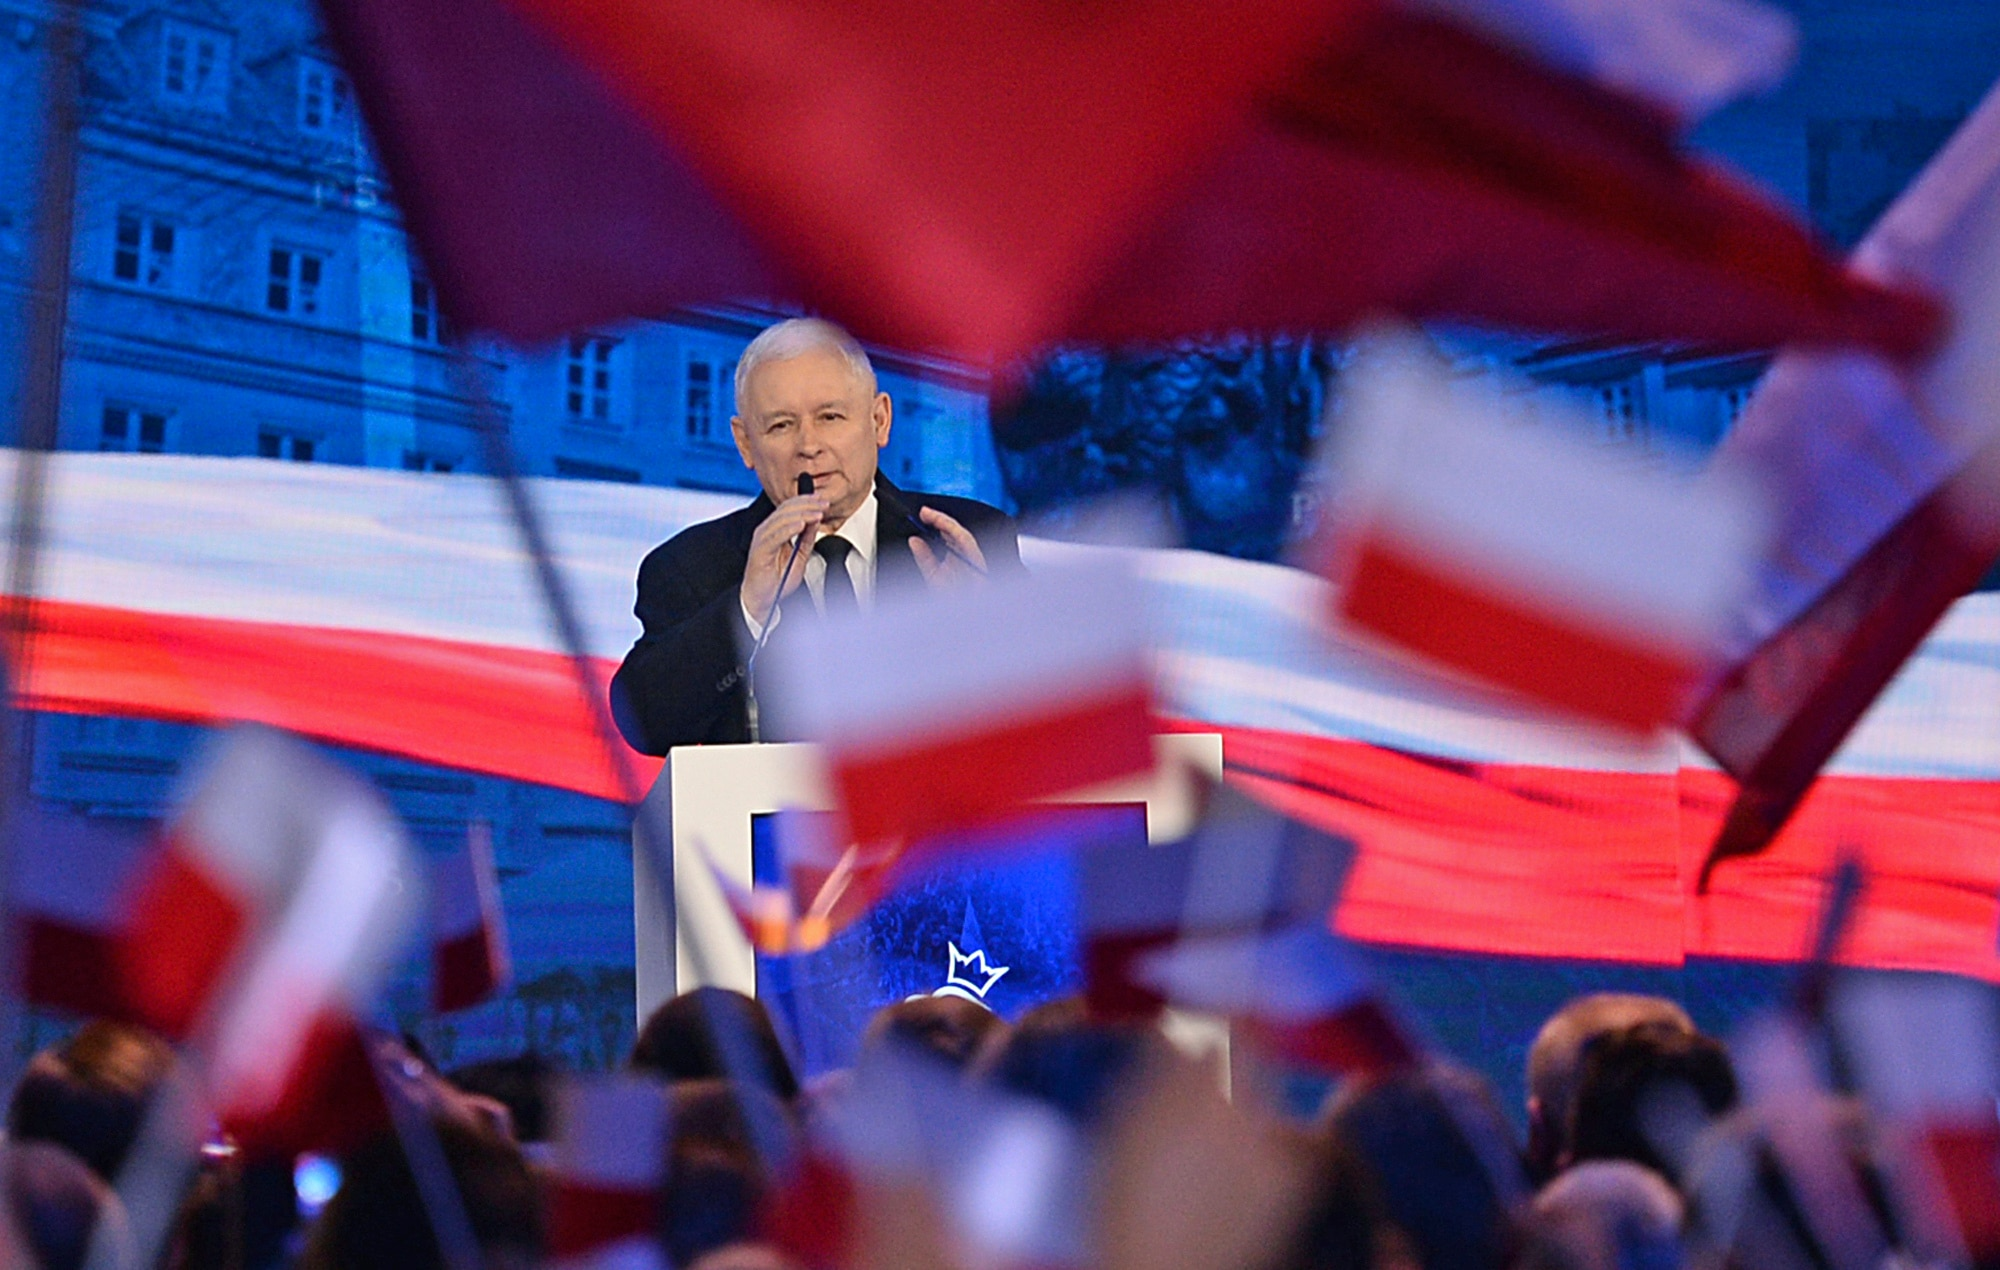 Jaroslaw Kaczynski, leader of the ruling Law and Justice party (PiS).